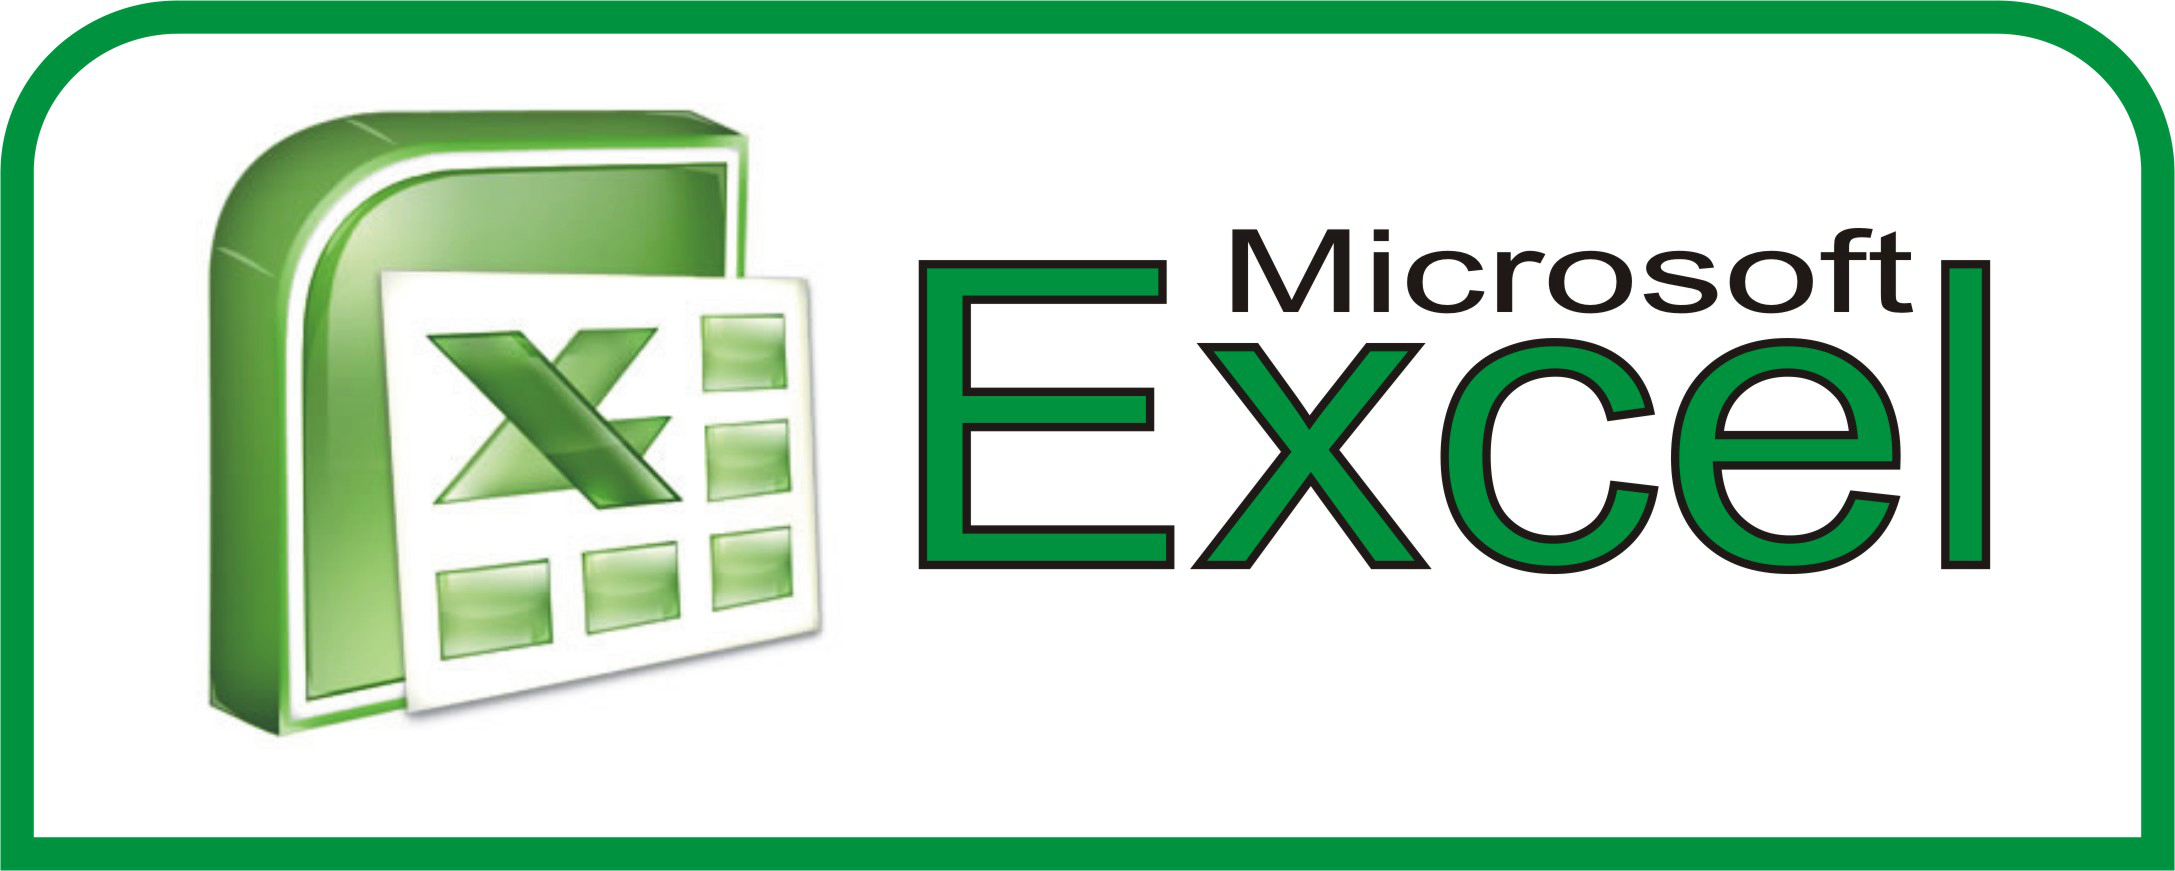 Ediblewildsus  Gorgeous  Excel Shortcuts You Probably Didnt Know About  Techdissected With Lovable Decrease Excel File Size Besides Multiply In Excel Formula Furthermore Using Dollar Signs In Excel With Easy On The Eye Powerpivot Add In For Excel  Also Excel Macro Paste In Addition Excel Log Graph And Excel Data Reader As Well As Free Excel Download For Windows  Additionally Mail Merge Excel To Word  From Techdissectedcom With Ediblewildsus  Lovable  Excel Shortcuts You Probably Didnt Know About  Techdissected With Easy On The Eye Decrease Excel File Size Besides Multiply In Excel Formula Furthermore Using Dollar Signs In Excel And Gorgeous Powerpivot Add In For Excel  Also Excel Macro Paste In Addition Excel Log Graph From Techdissectedcom